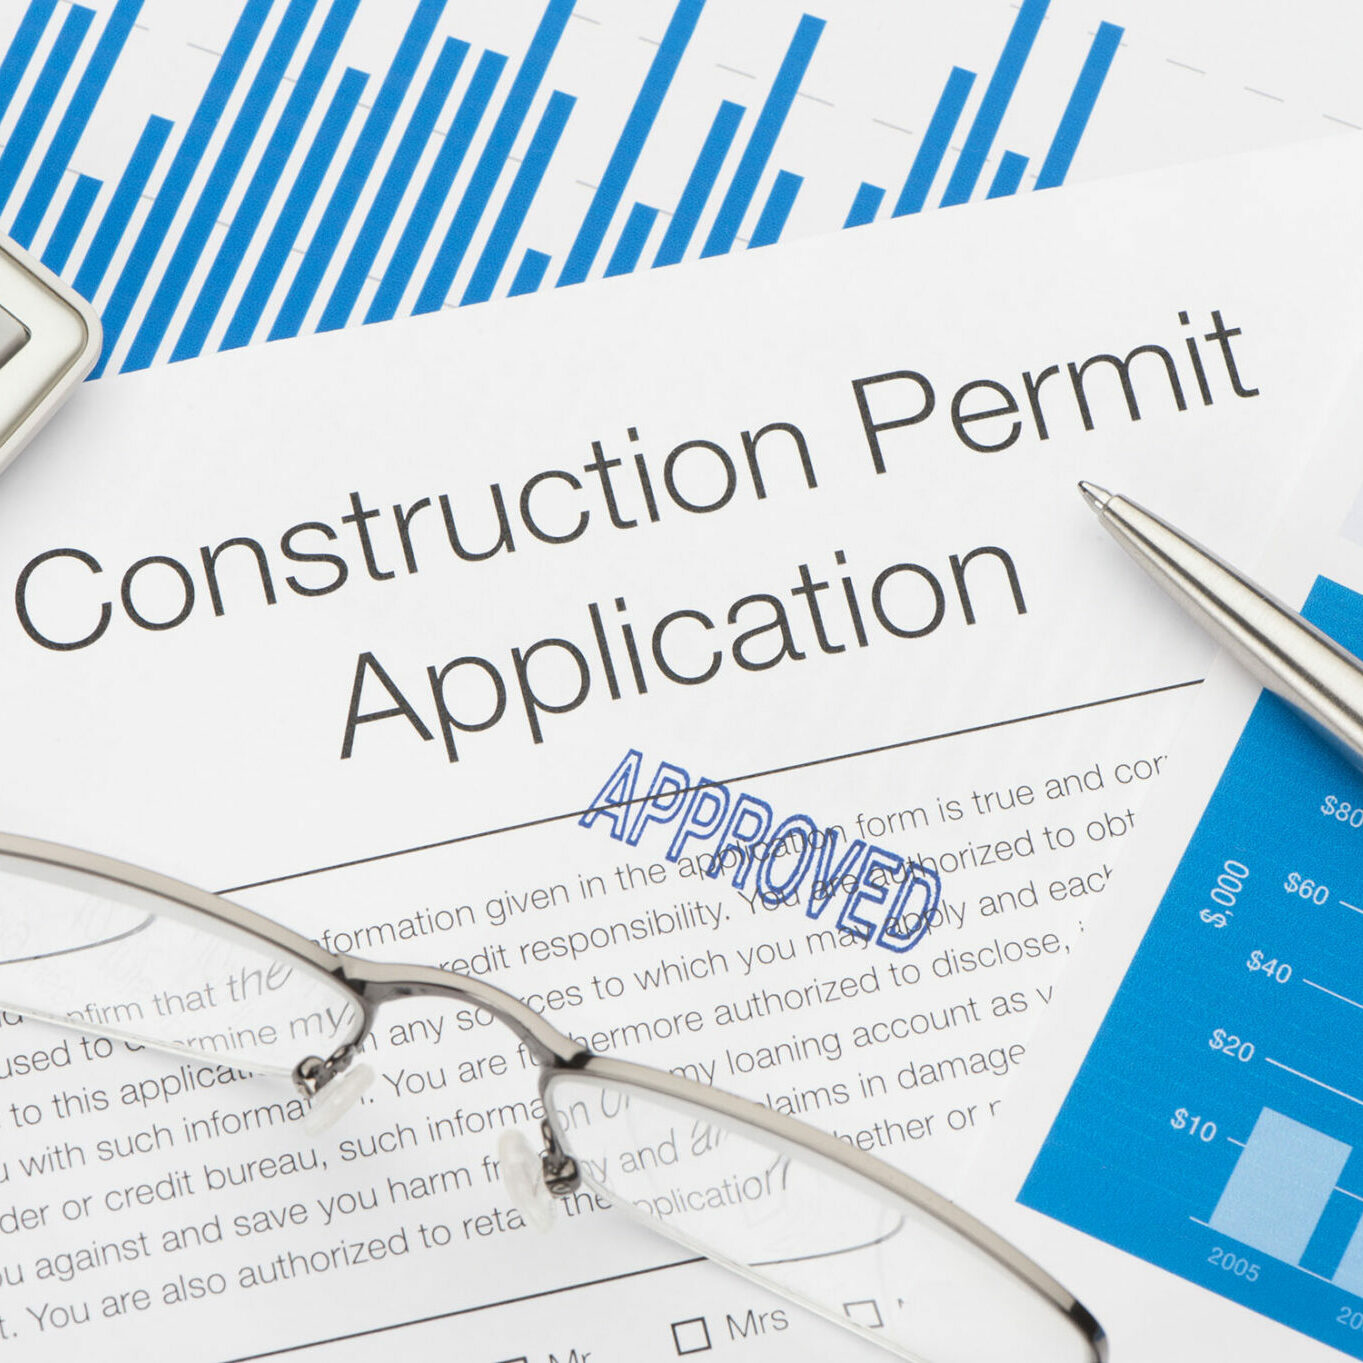 Construction Permit Assistance